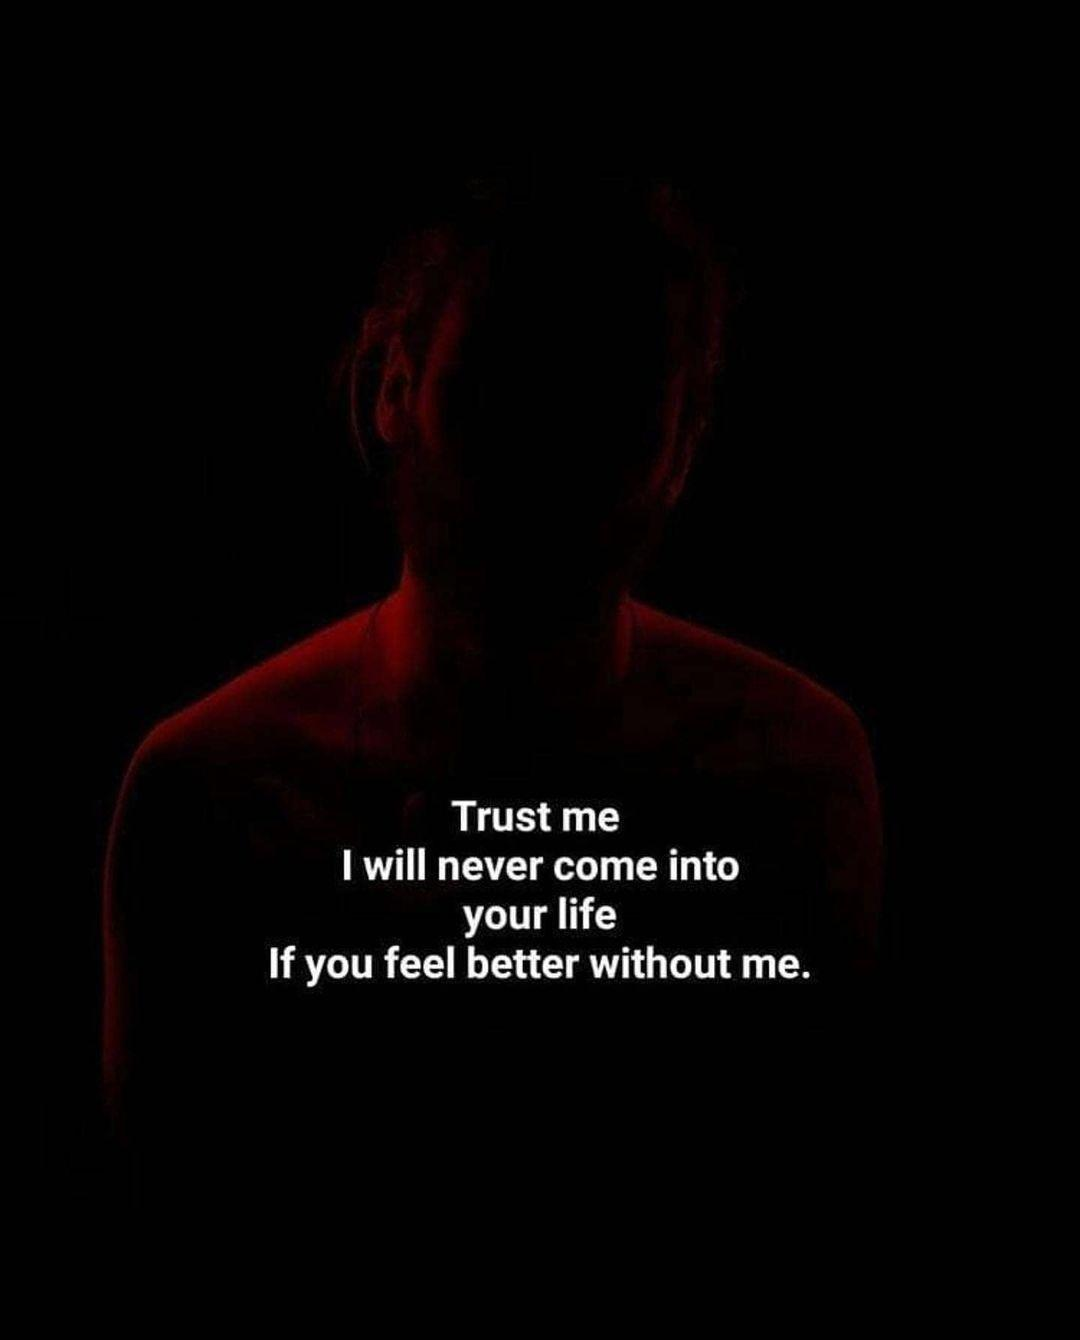 hurt quotes, pain quotes, sad quotes about pain, love hurts quotes, deep quotes about pain, love pain quotes, it hurts quotes, expectation hurts quotes, words hurt quotes, expectation hurts, feeling hurt quotes, pain quotes about life, hurting quotes on relationship, sad hurt quotes, hurting status, hurting images, pain sad quotes, hurt pain quotes, sad quotes about love and pain, i am sorry quotes for hurting you, sad quotes about life and pain, emotional pain quotes, painful love text messages,